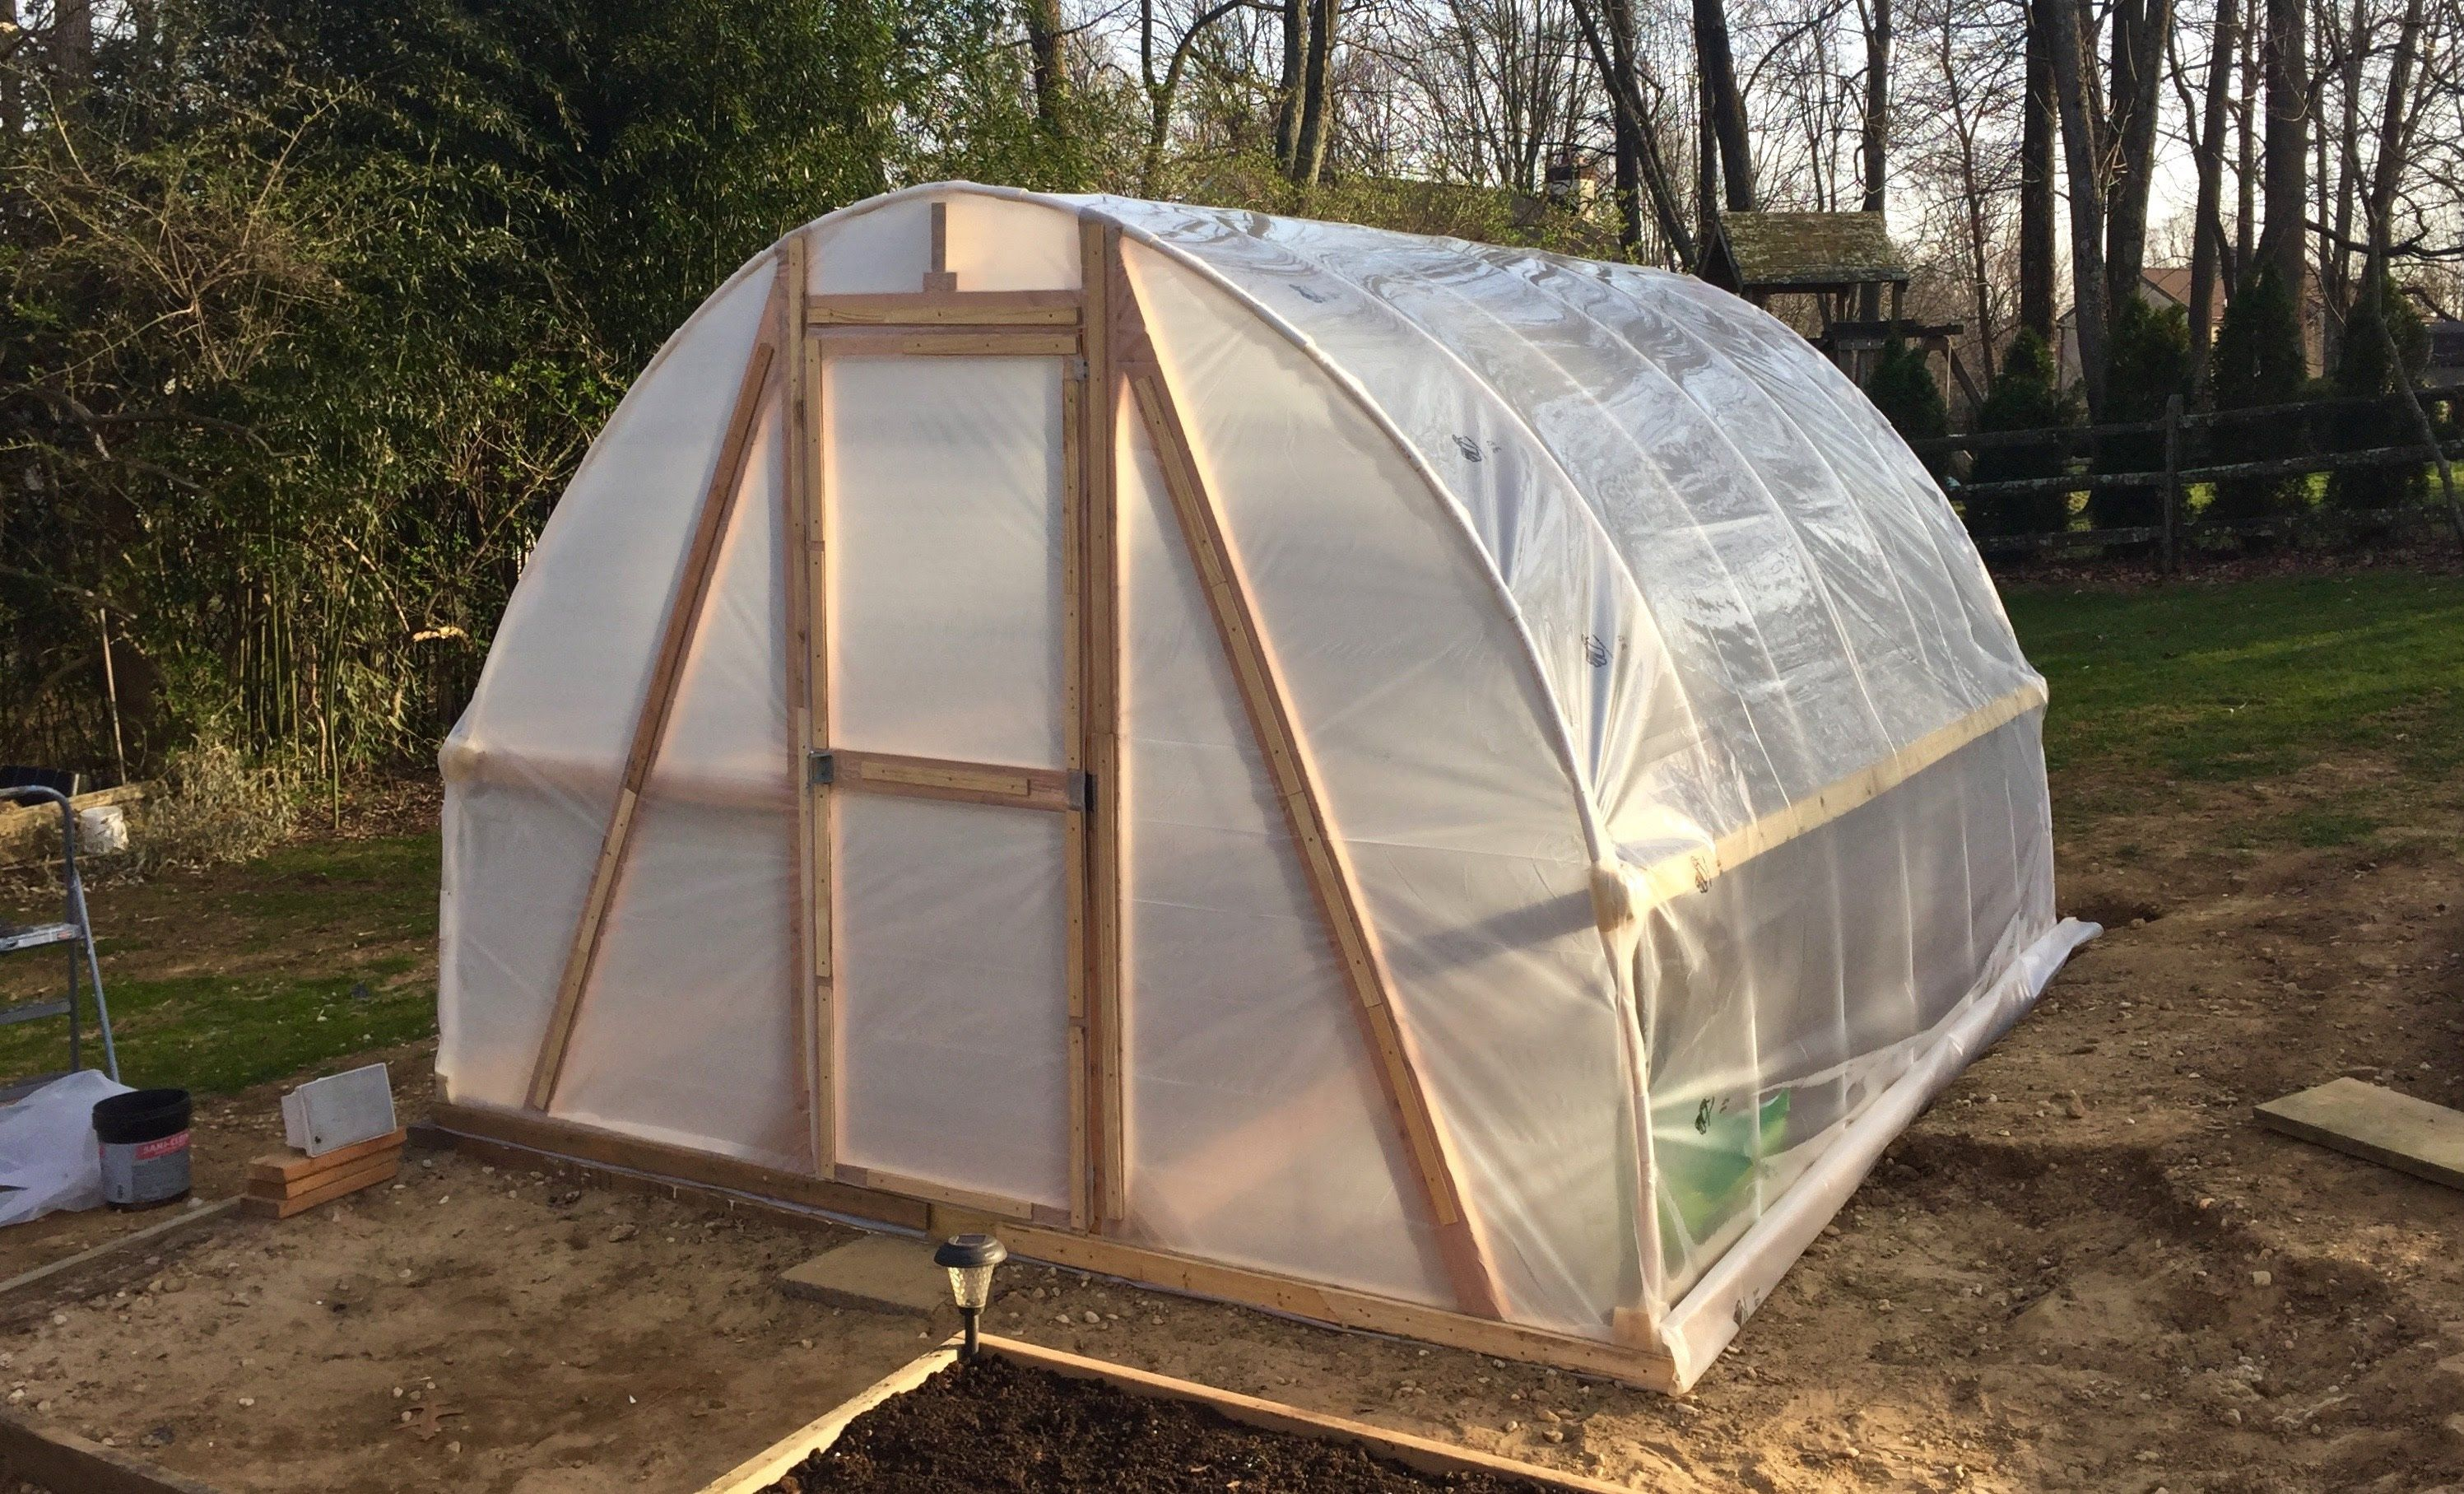 Diy Greenhouse Pvc Hoop House Polytunnel Garden Homemade Cheap Low Cost Diy Greenhouse Greenhouse Plans Simple Greenhouse